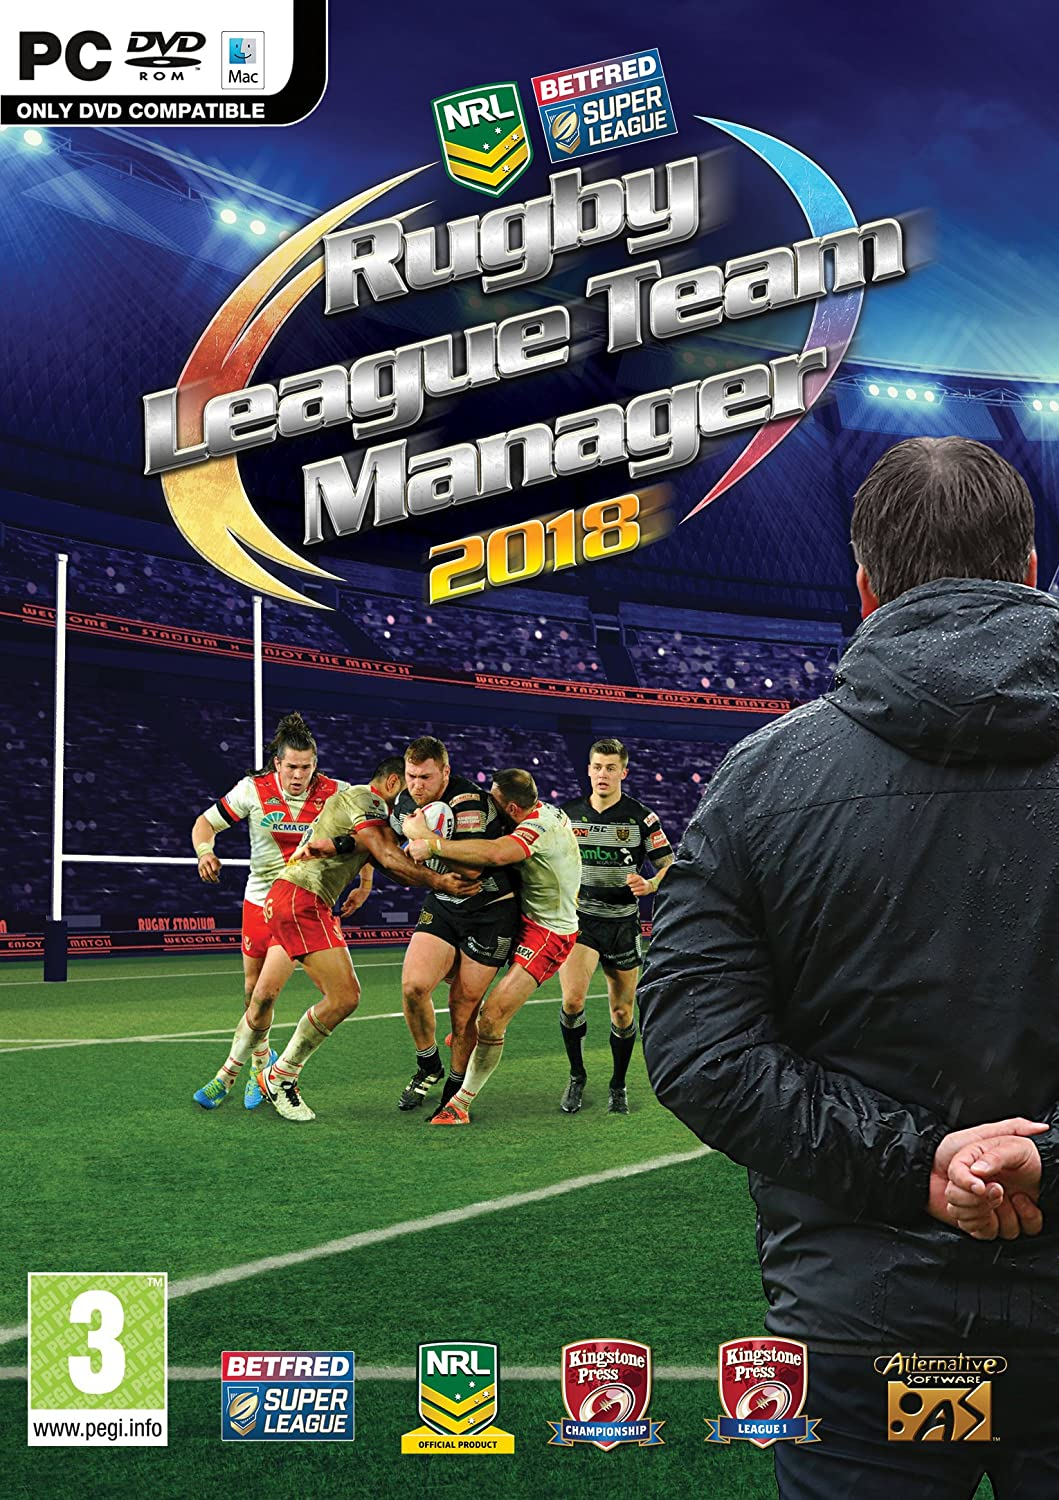 Rugby League Team Manager 2018 Pc Dvd Mac Amazon Co Uk Pc